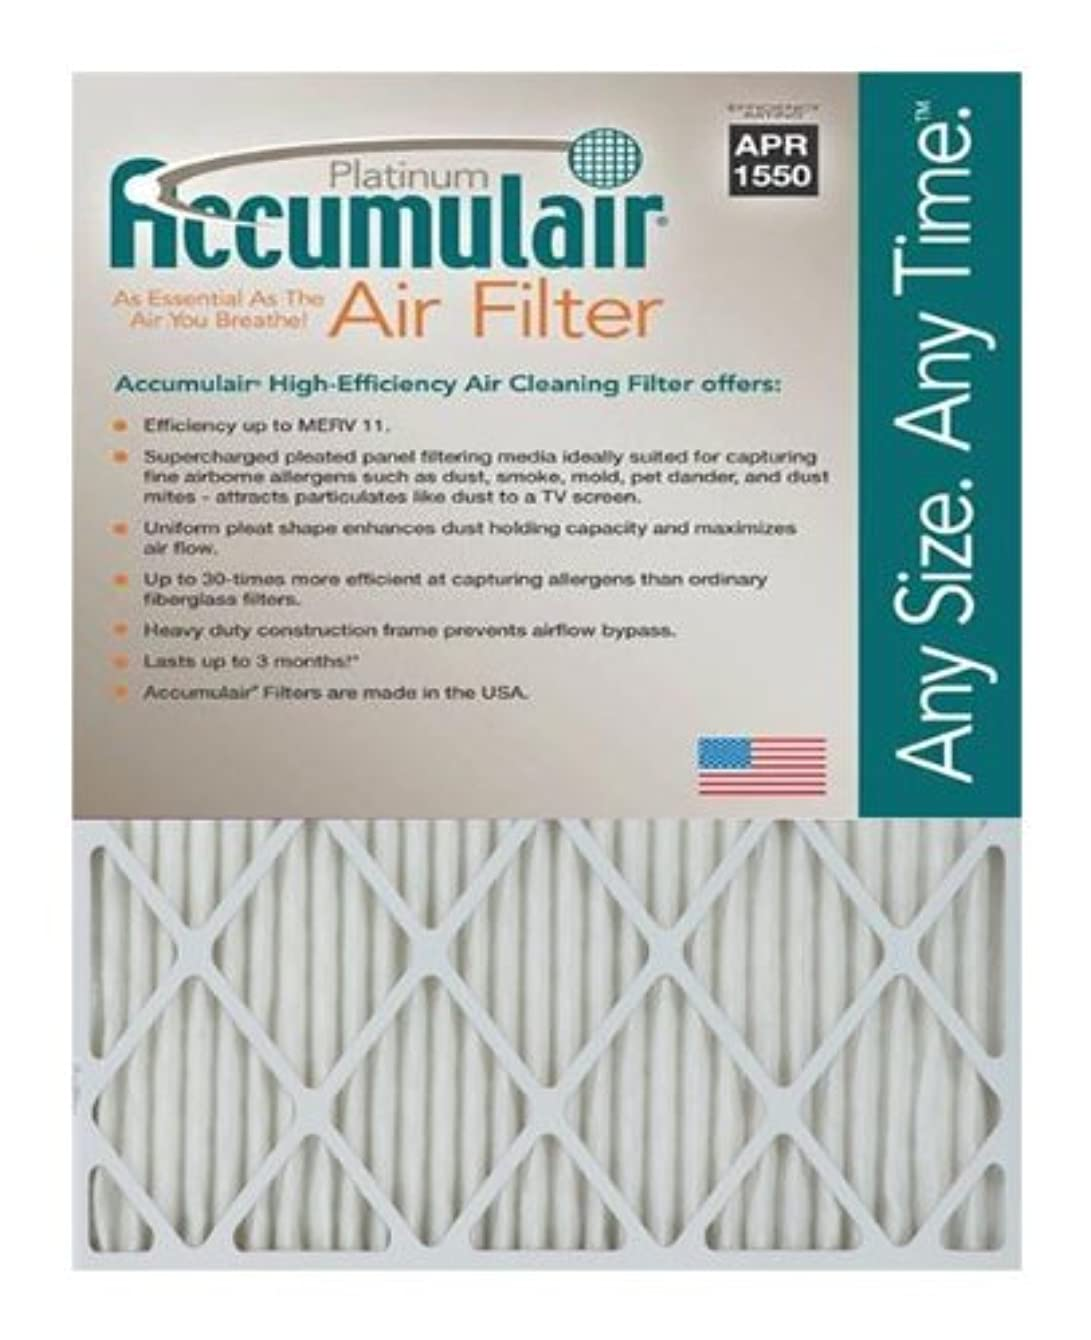 Accumulair Platinum 19x23x1 (Actual Size) MERV 11 Air Filter/Furnace Filter (3 Pack)